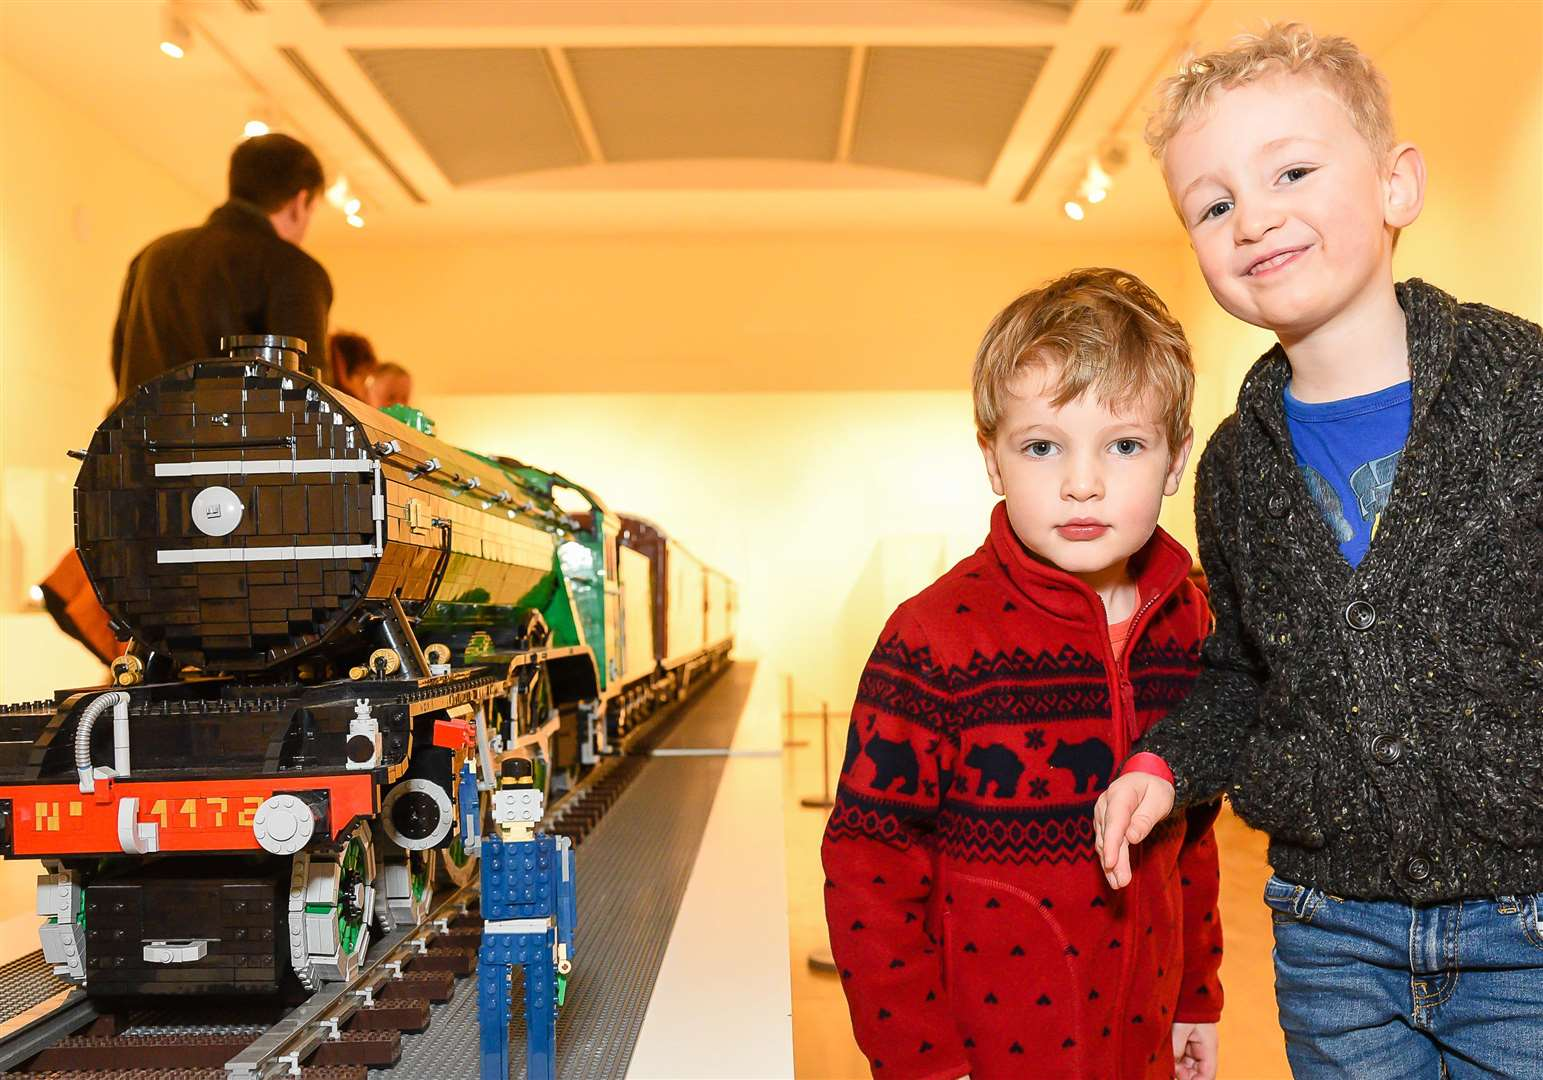 More tickets released for LEGO exhibition